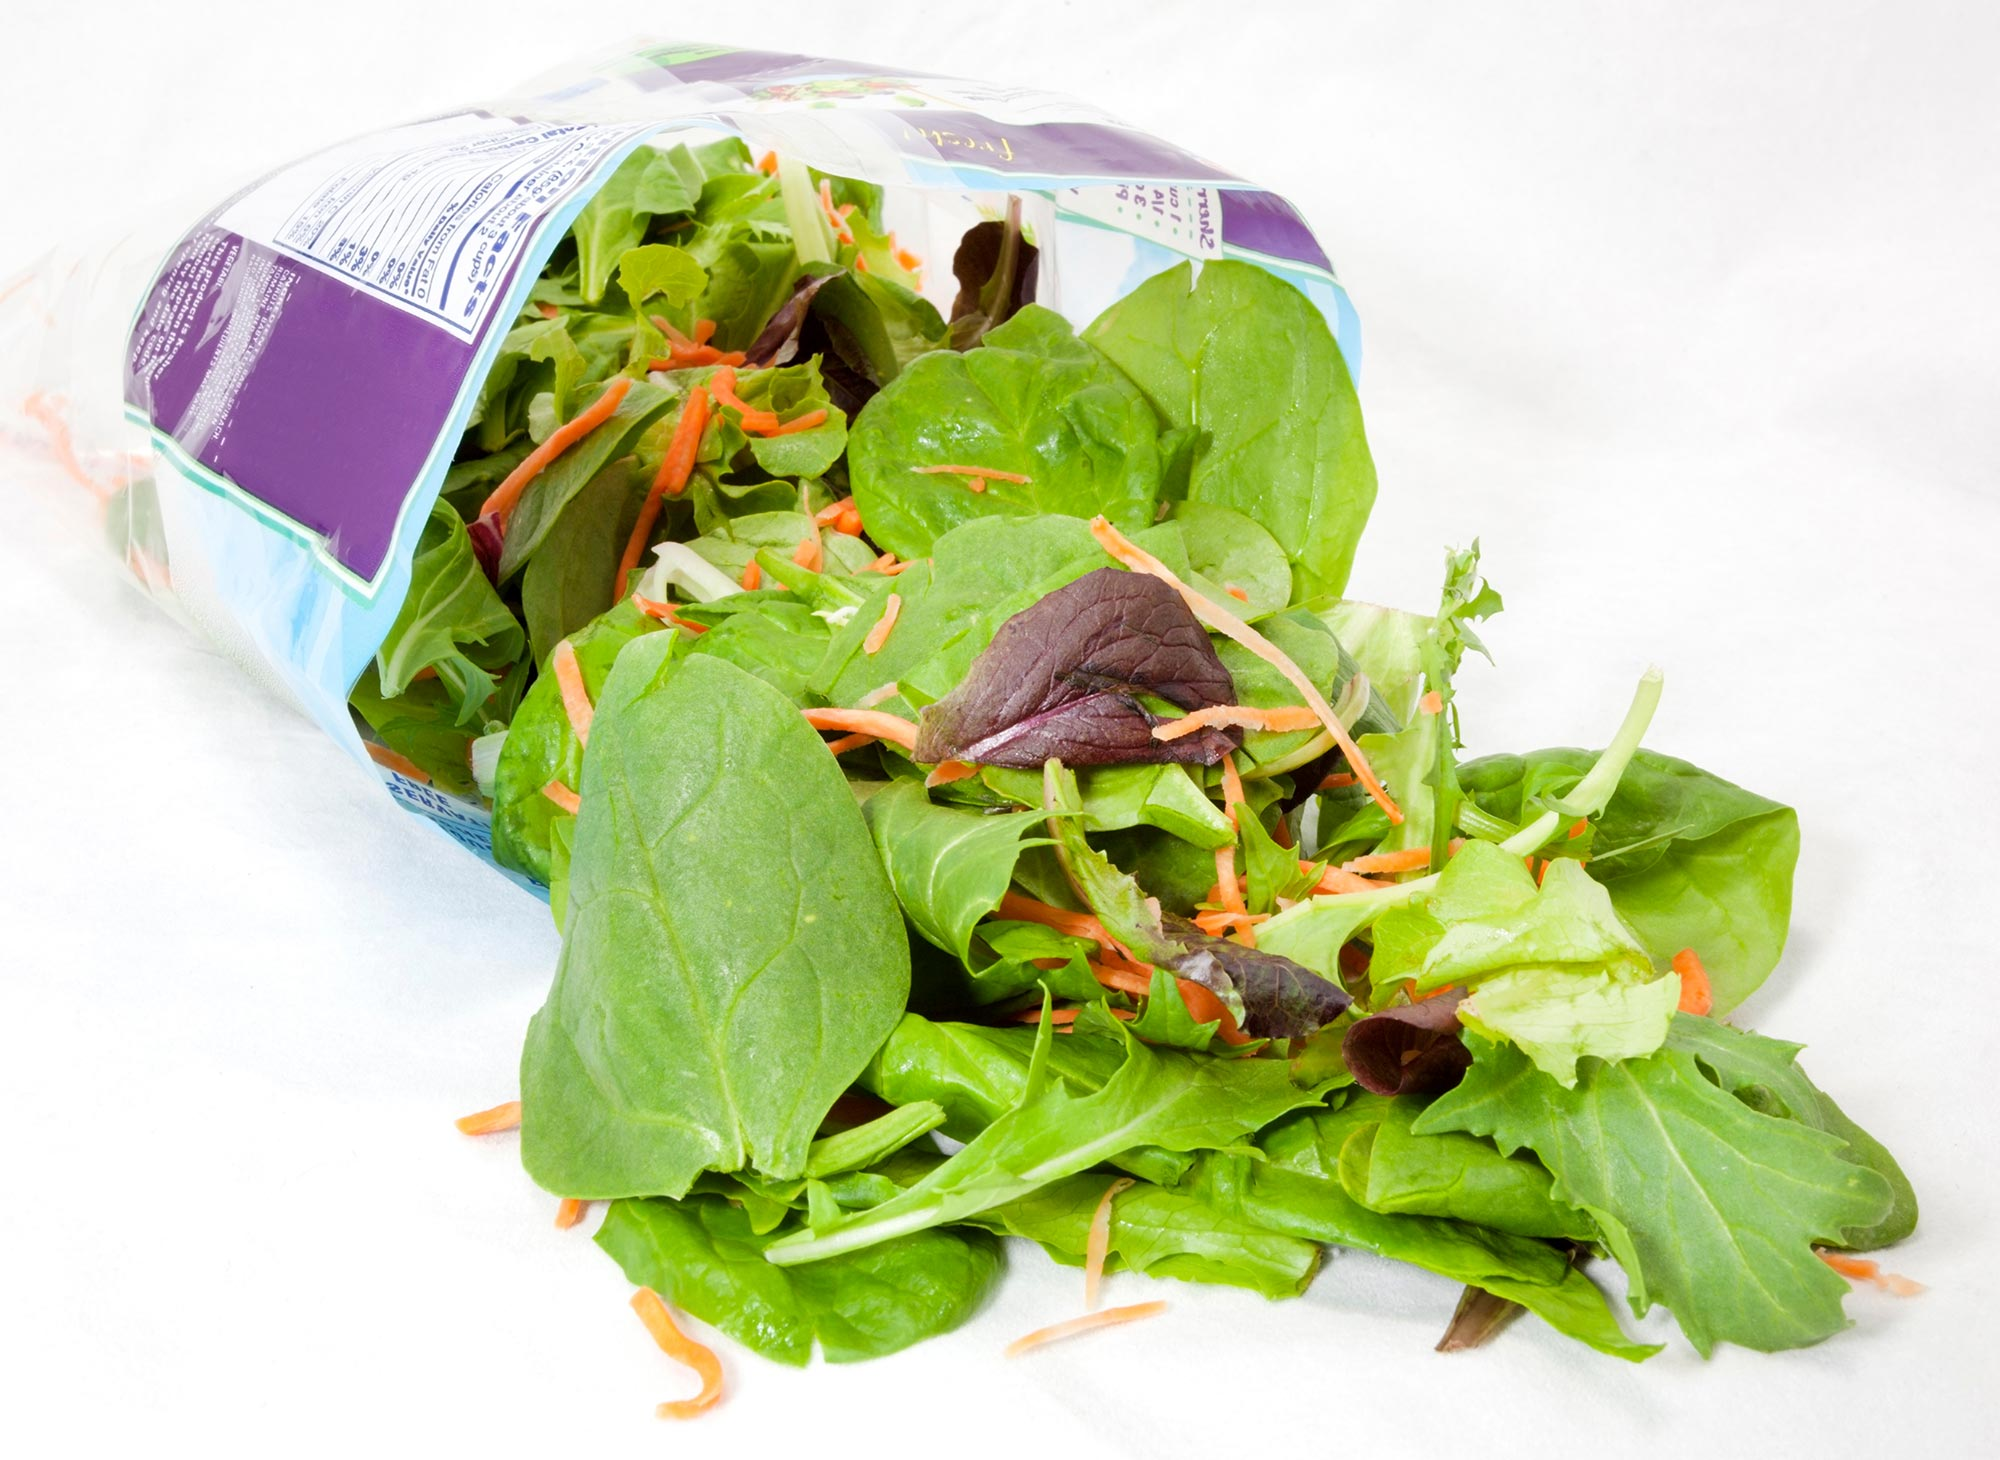 Diseases Developed In Bagged Salads